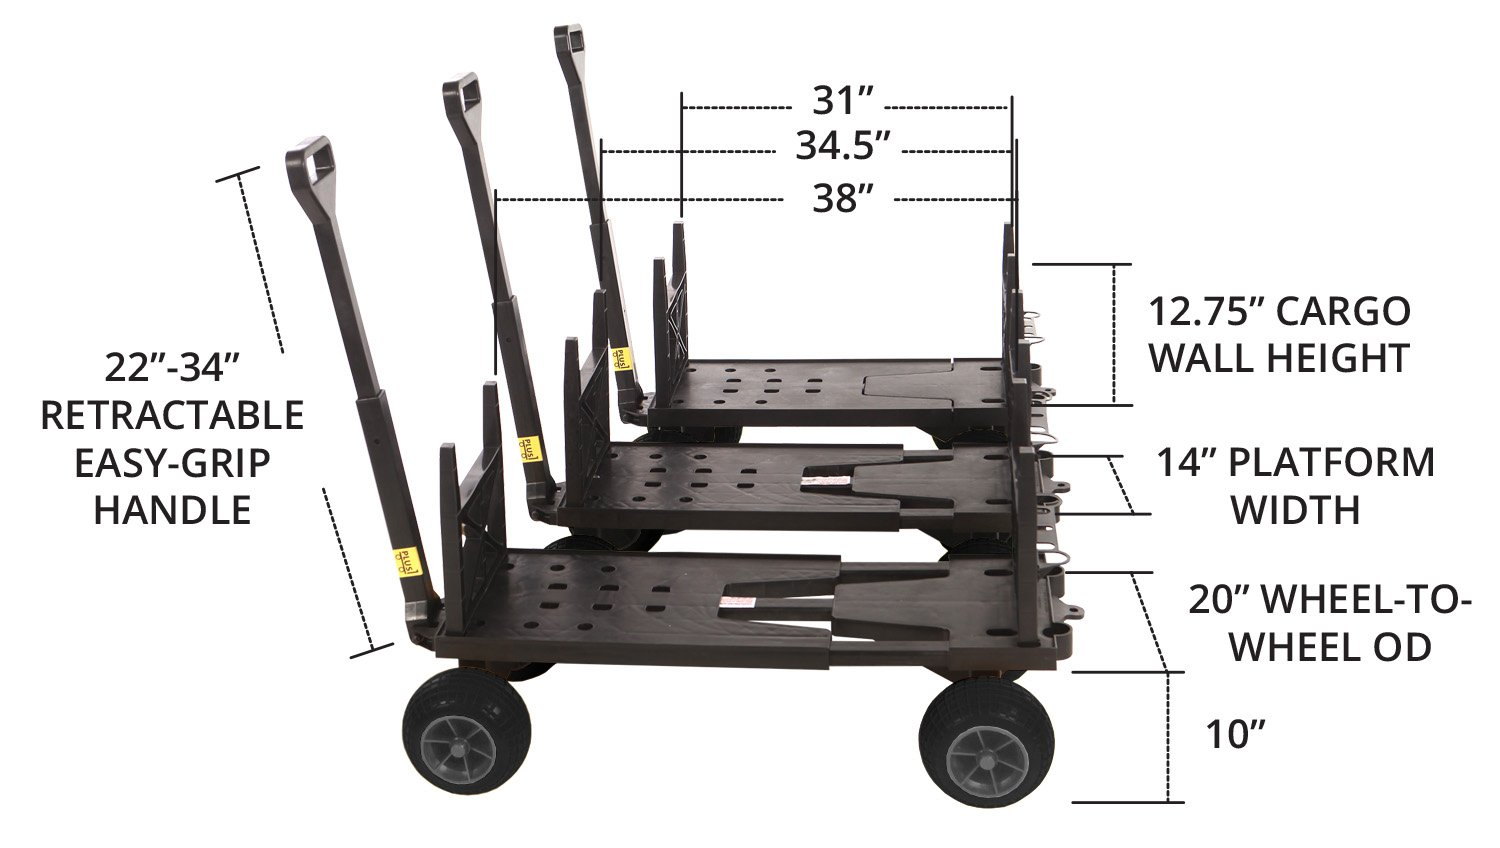 Mighty Max Plus One Multipurpose Garden Fishing Sports Equipment Cart by Mighty Max Cart (Image #2)